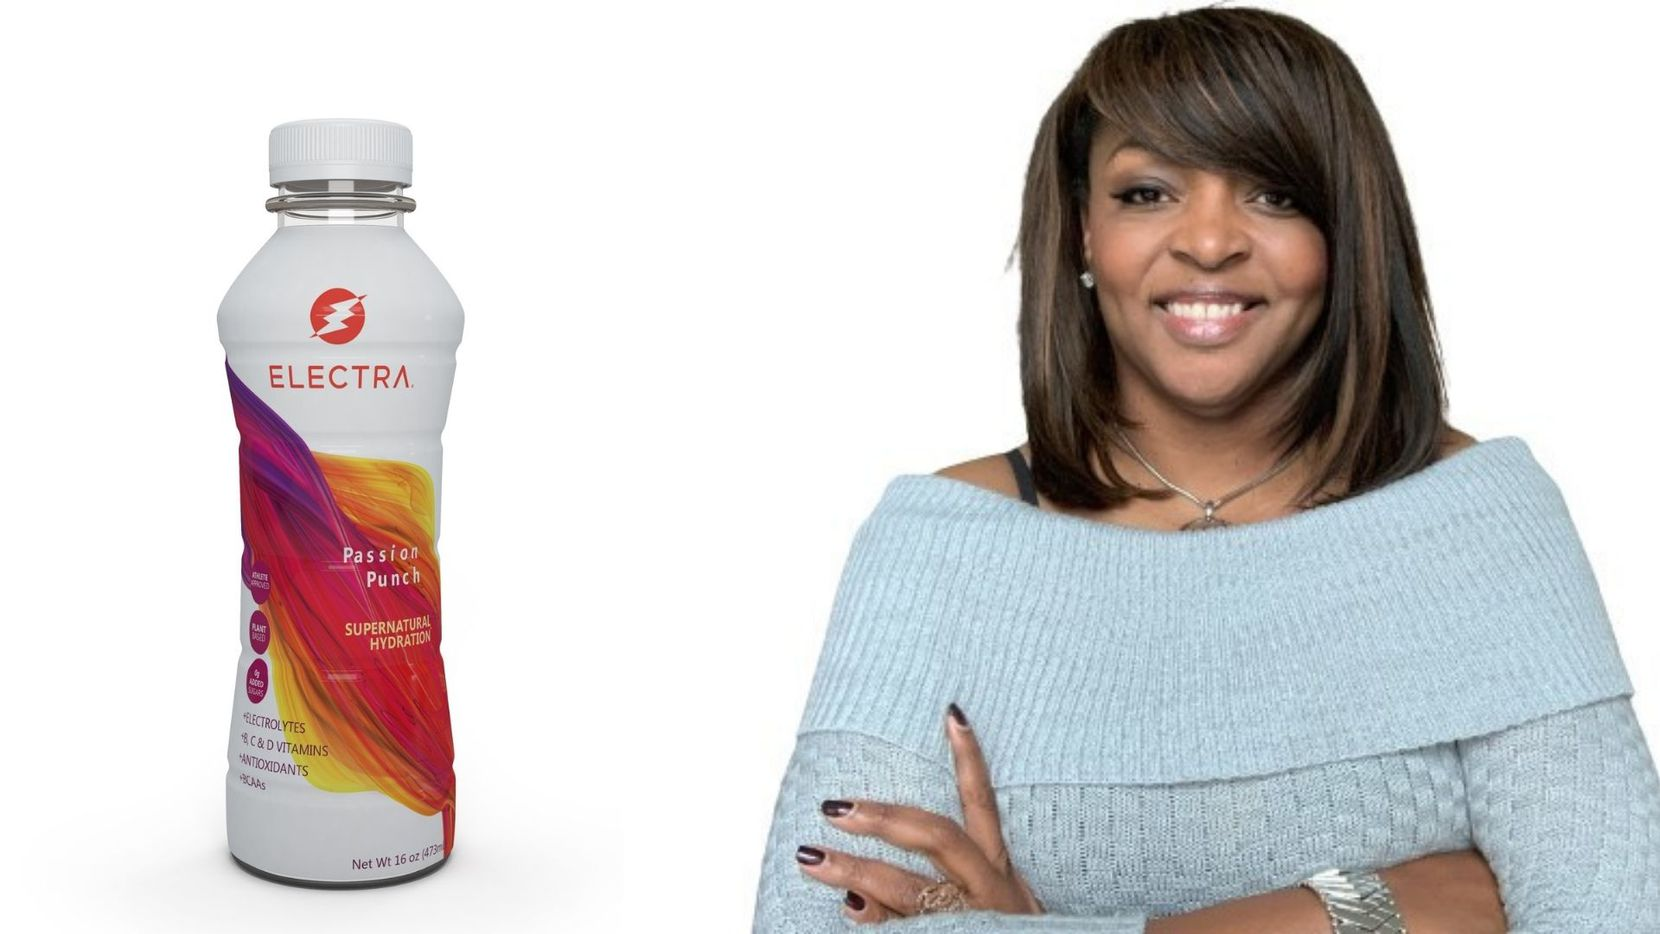 Fran Harris will pitch her sports drink line Electra on ABC's Shark Tank Friday.